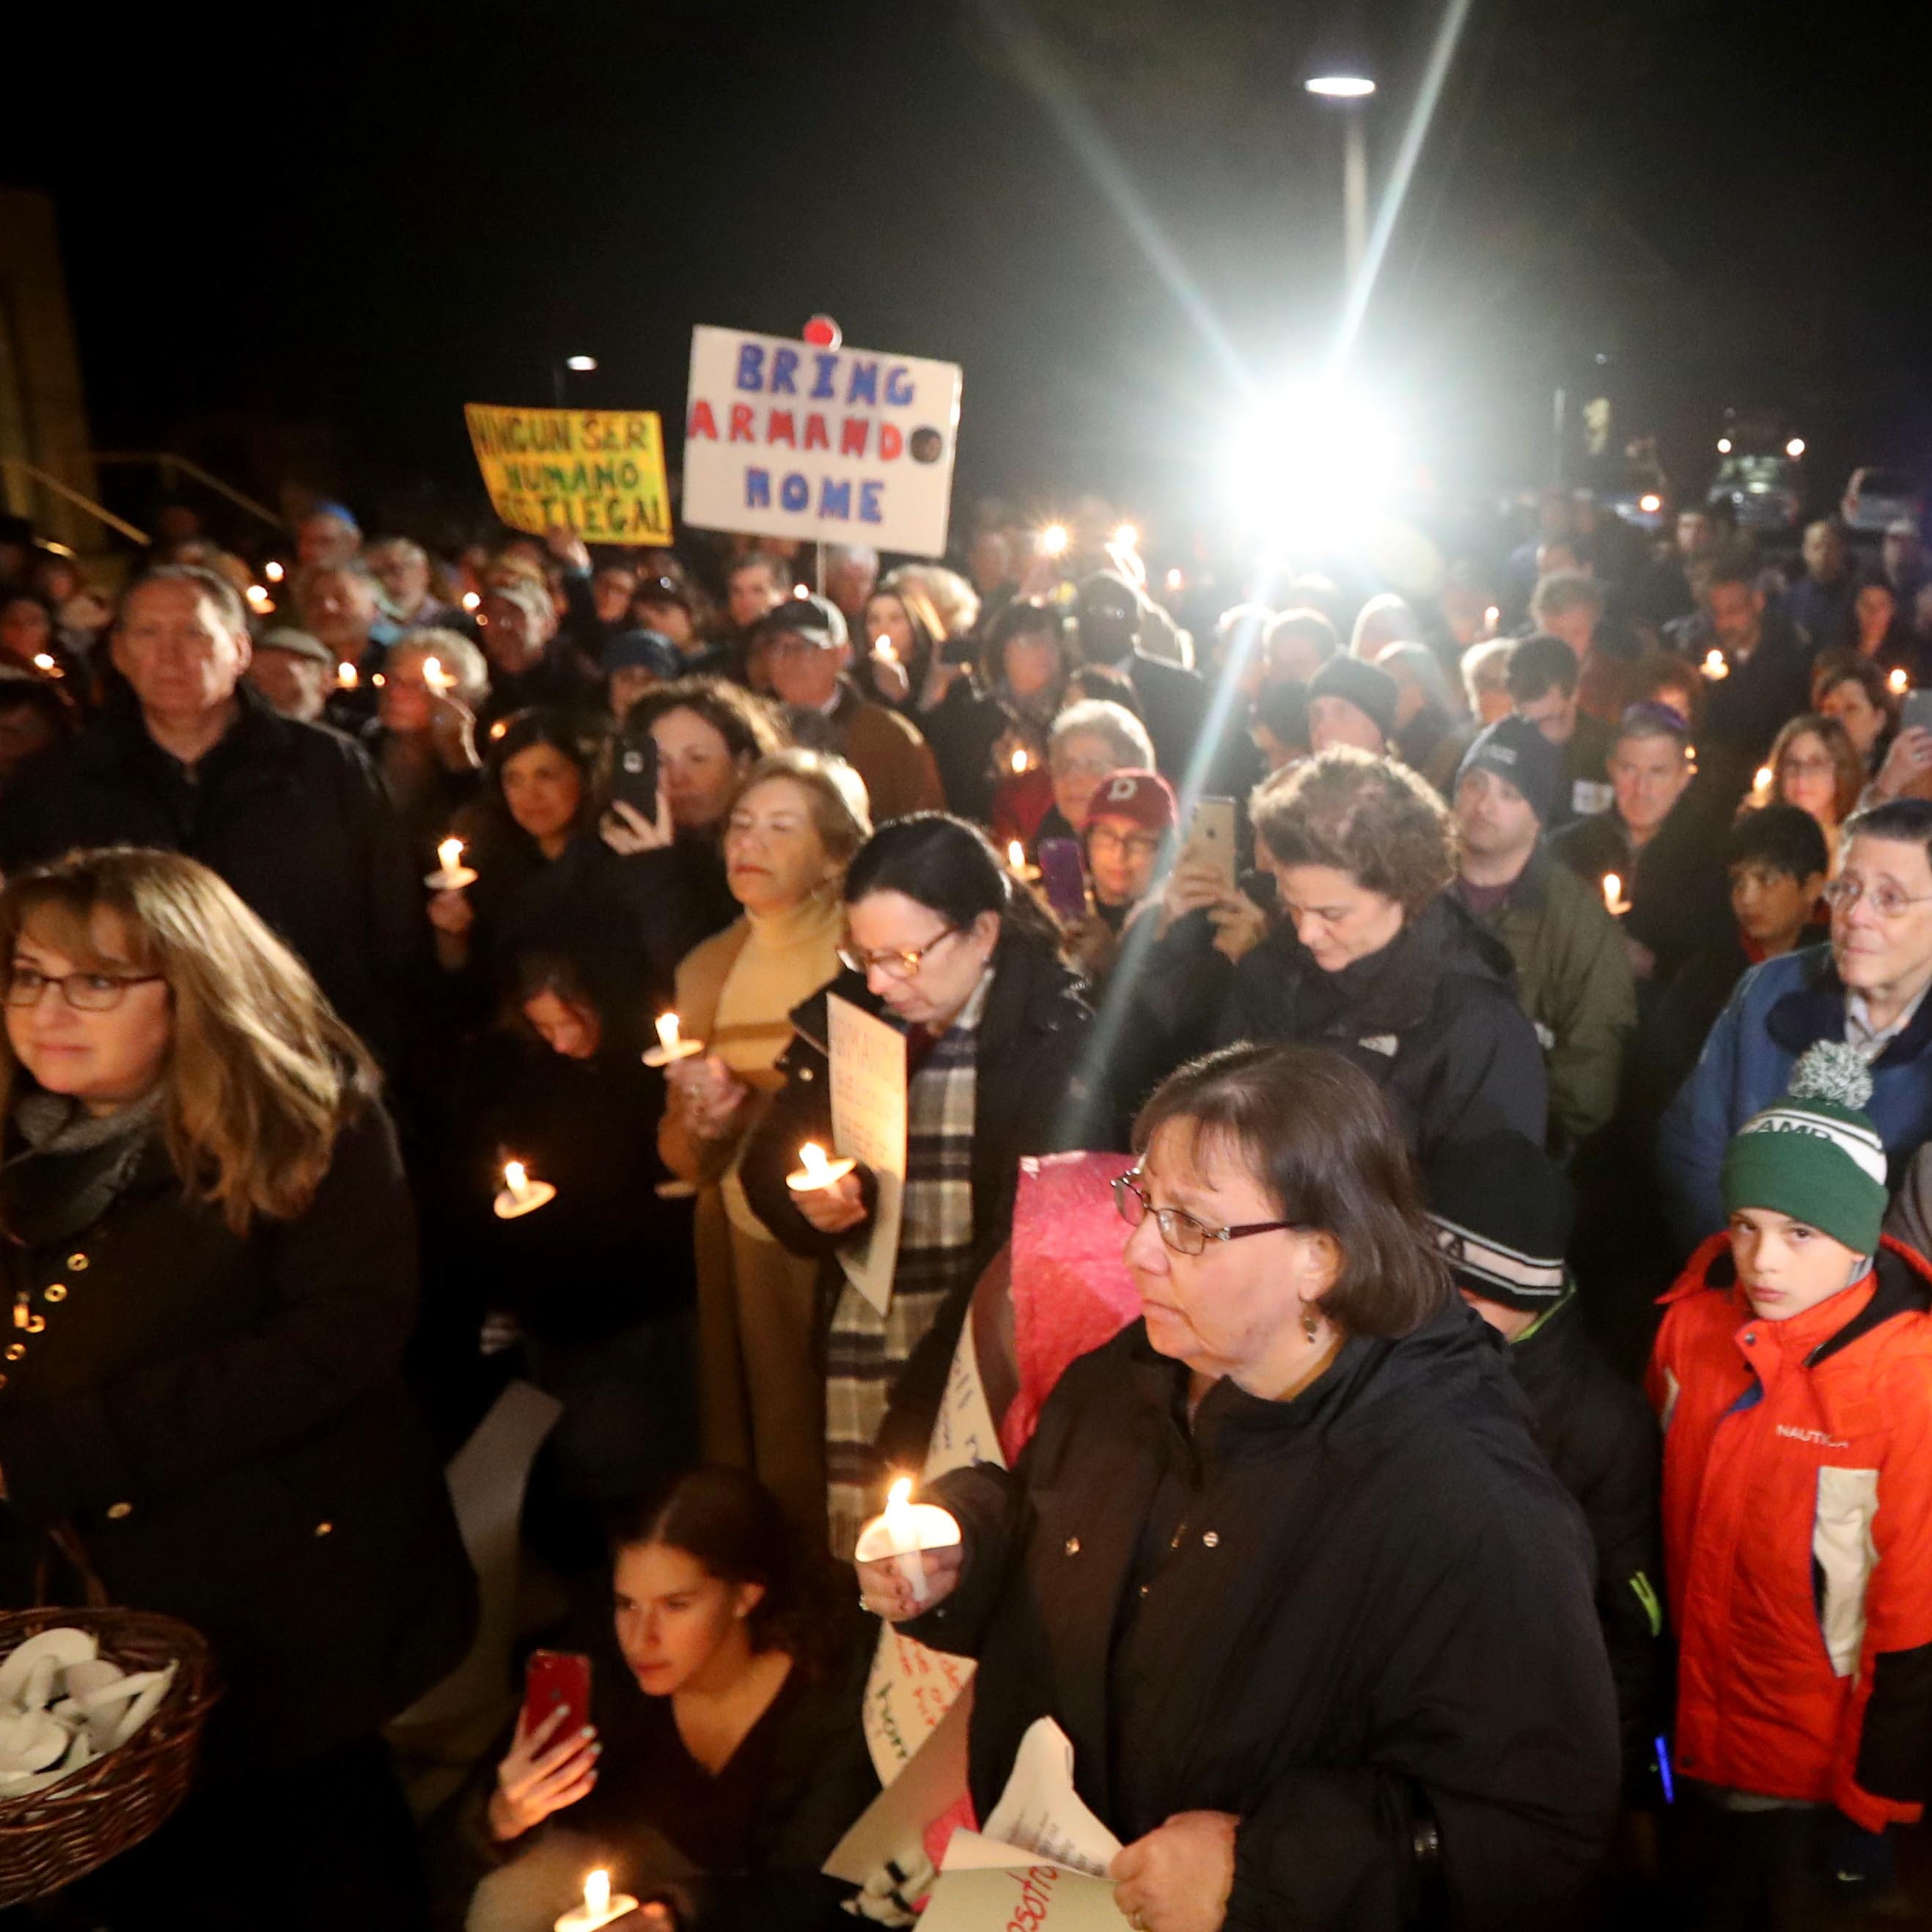 Mount Kisco: Bet Torah synagogue rallies for beloved custodian facing deportation